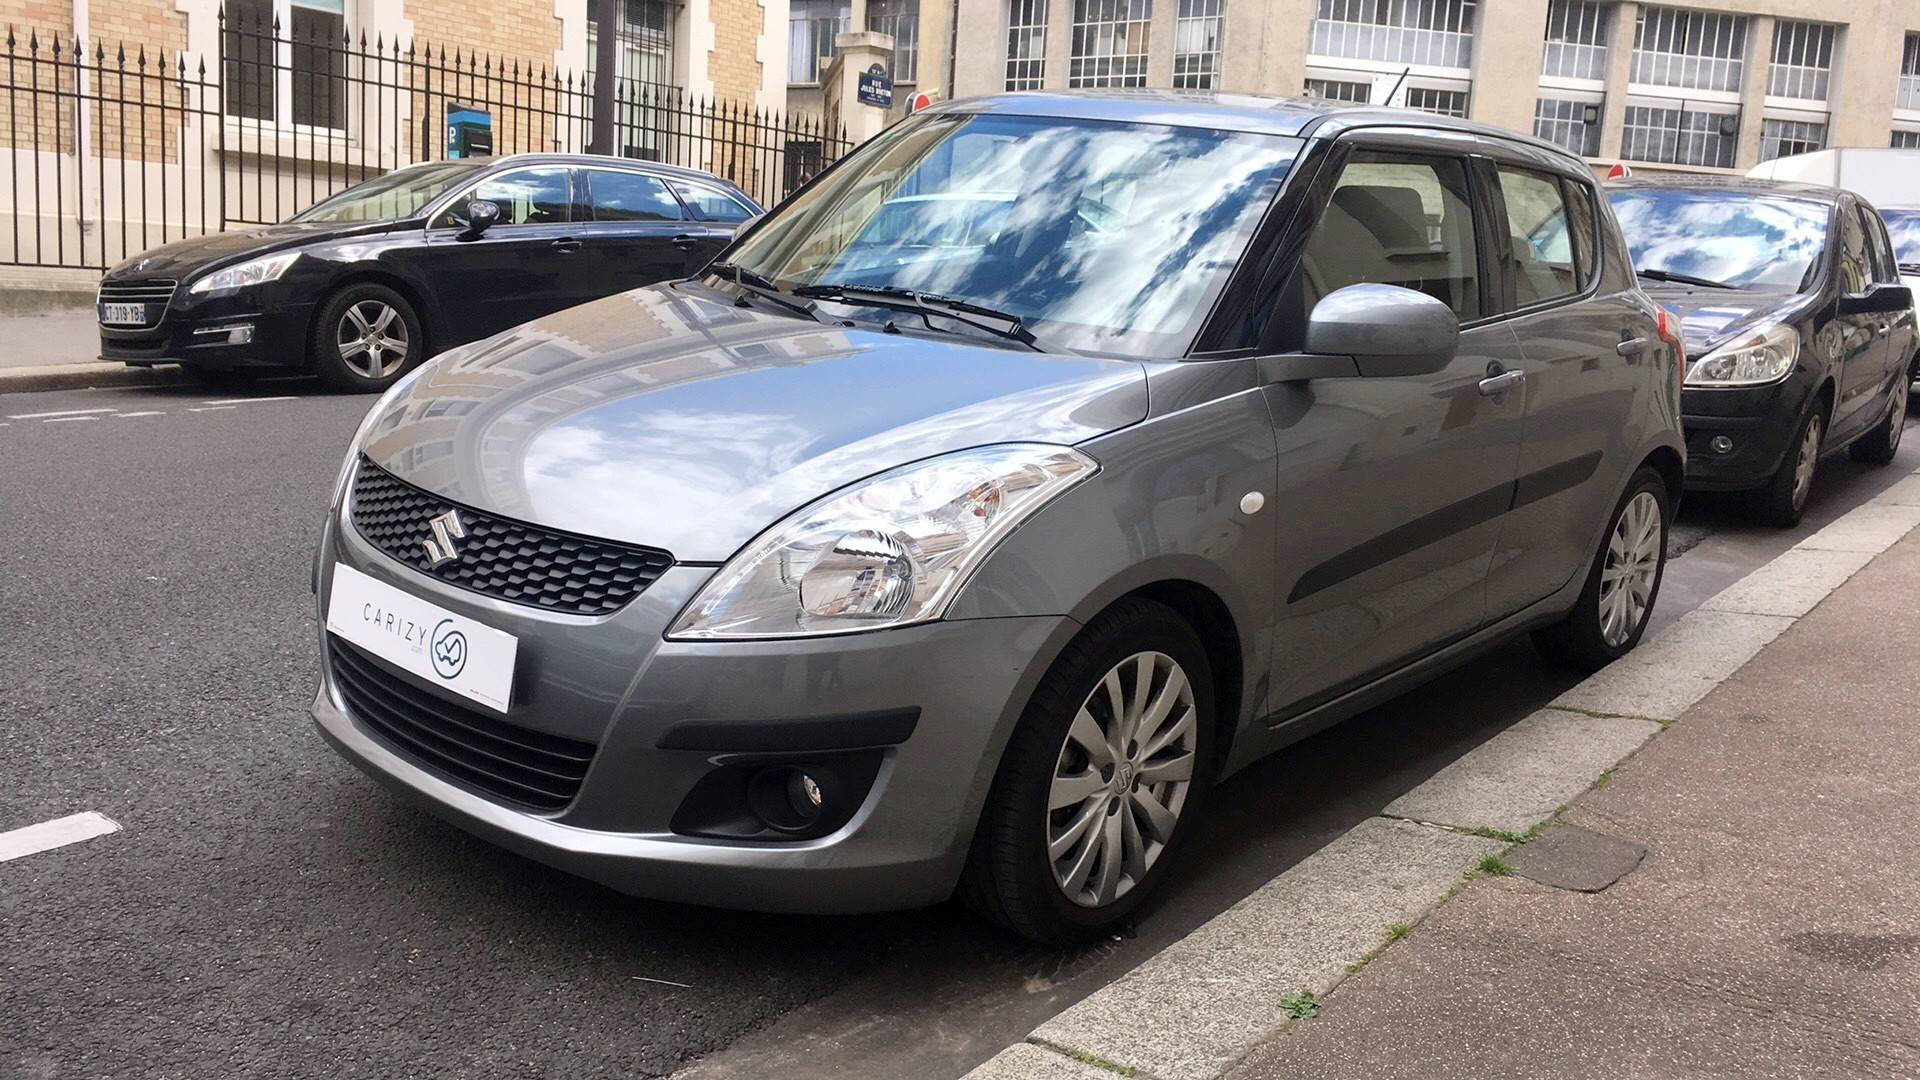 suzuki swift d u0026 39 occasion 1 2 vvt 95 glx pack bva paris